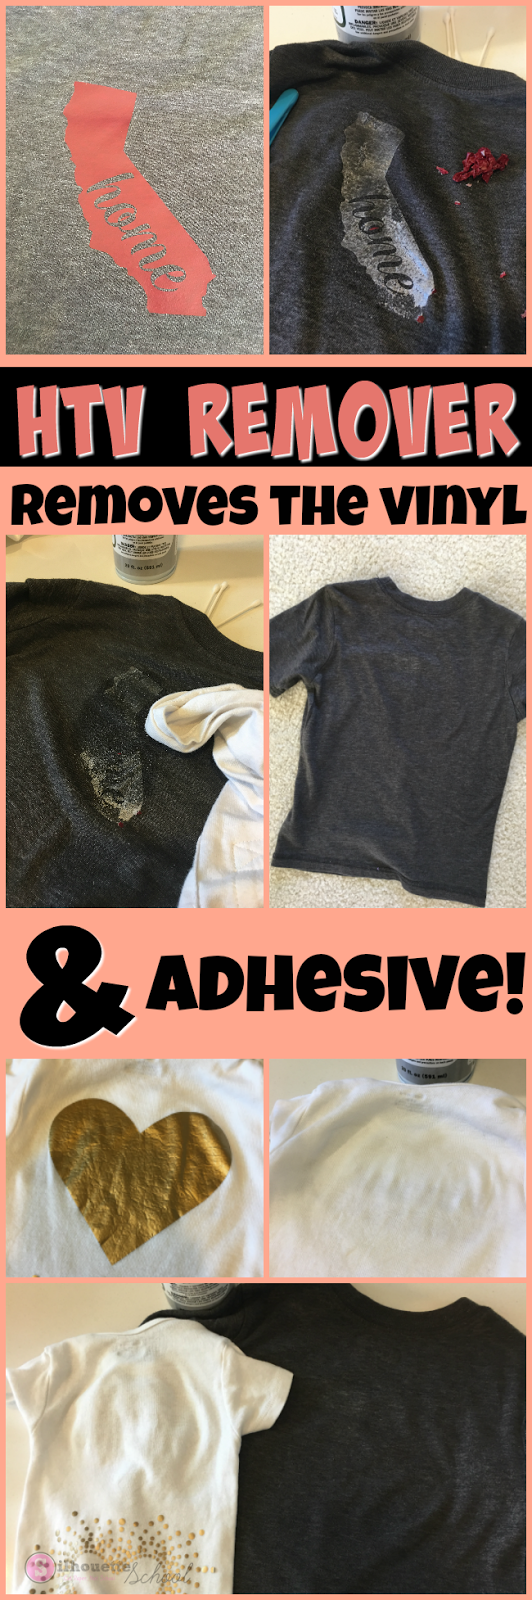 heat transfer vinyl remover , remove heat transfer vinyl , how to remove heat transfer vinyl from shirt, vinyl remover  heat remover remove heat transfer vinyl how to remove heat transfer vinyl from shirt how to remove t shirt vinyl